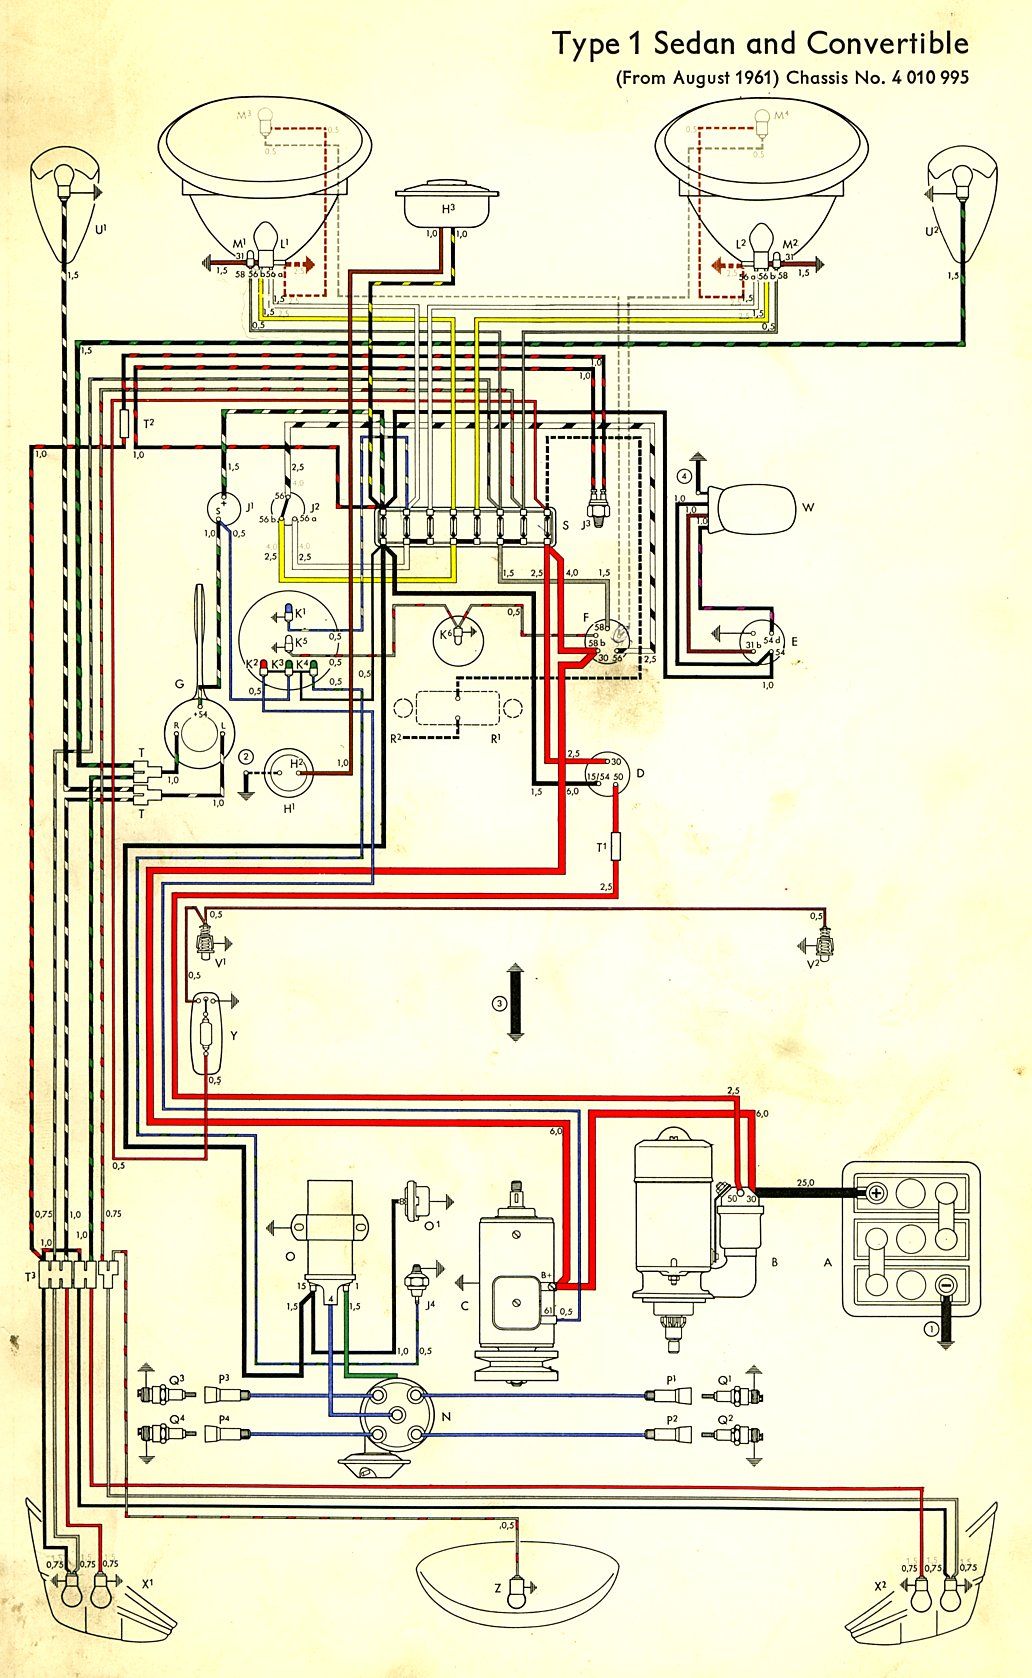 bug_62 1962 beetle wiring diagram thegoldenbug com 1969 beetle wiring diagram at sewacar.co